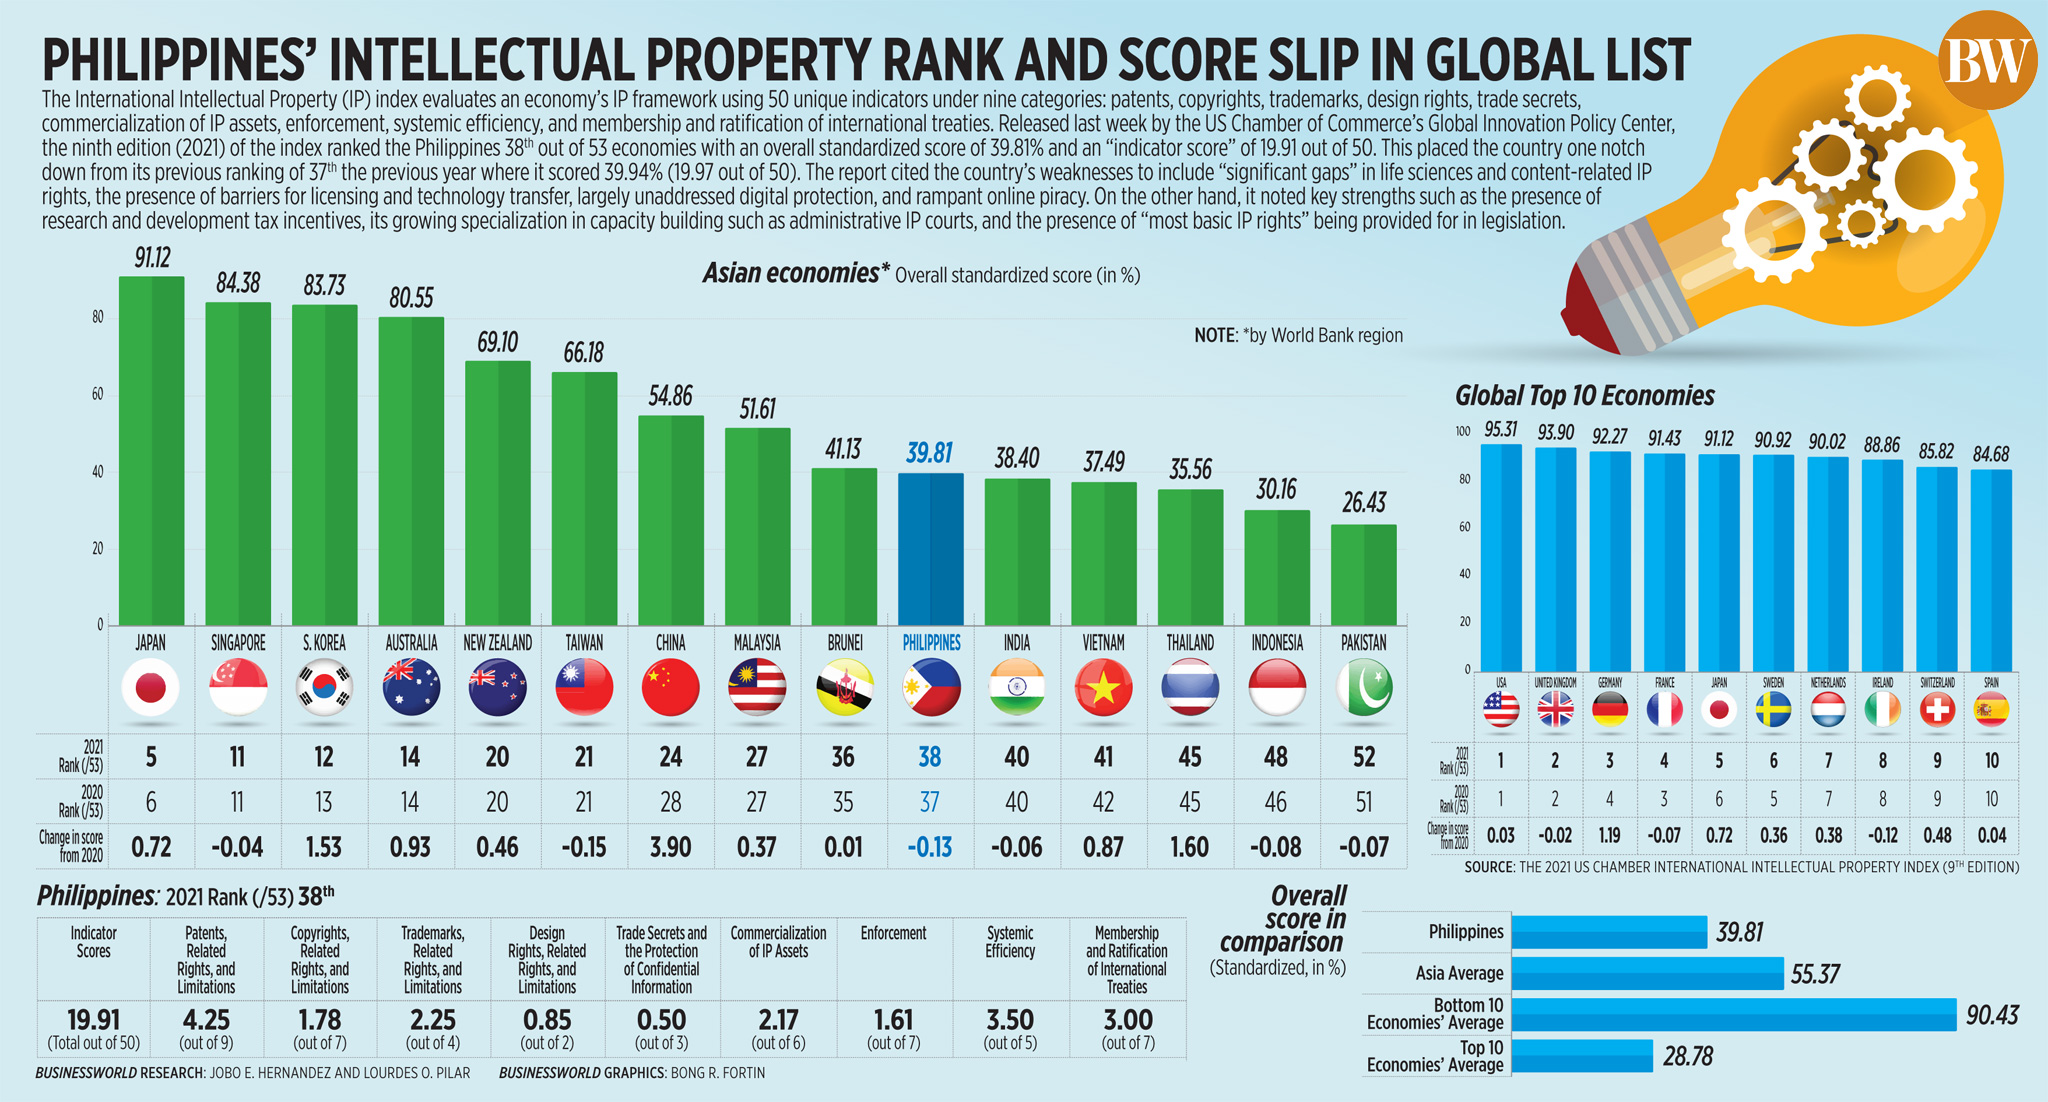 Philippines' intellectual property rank and score slip in global list